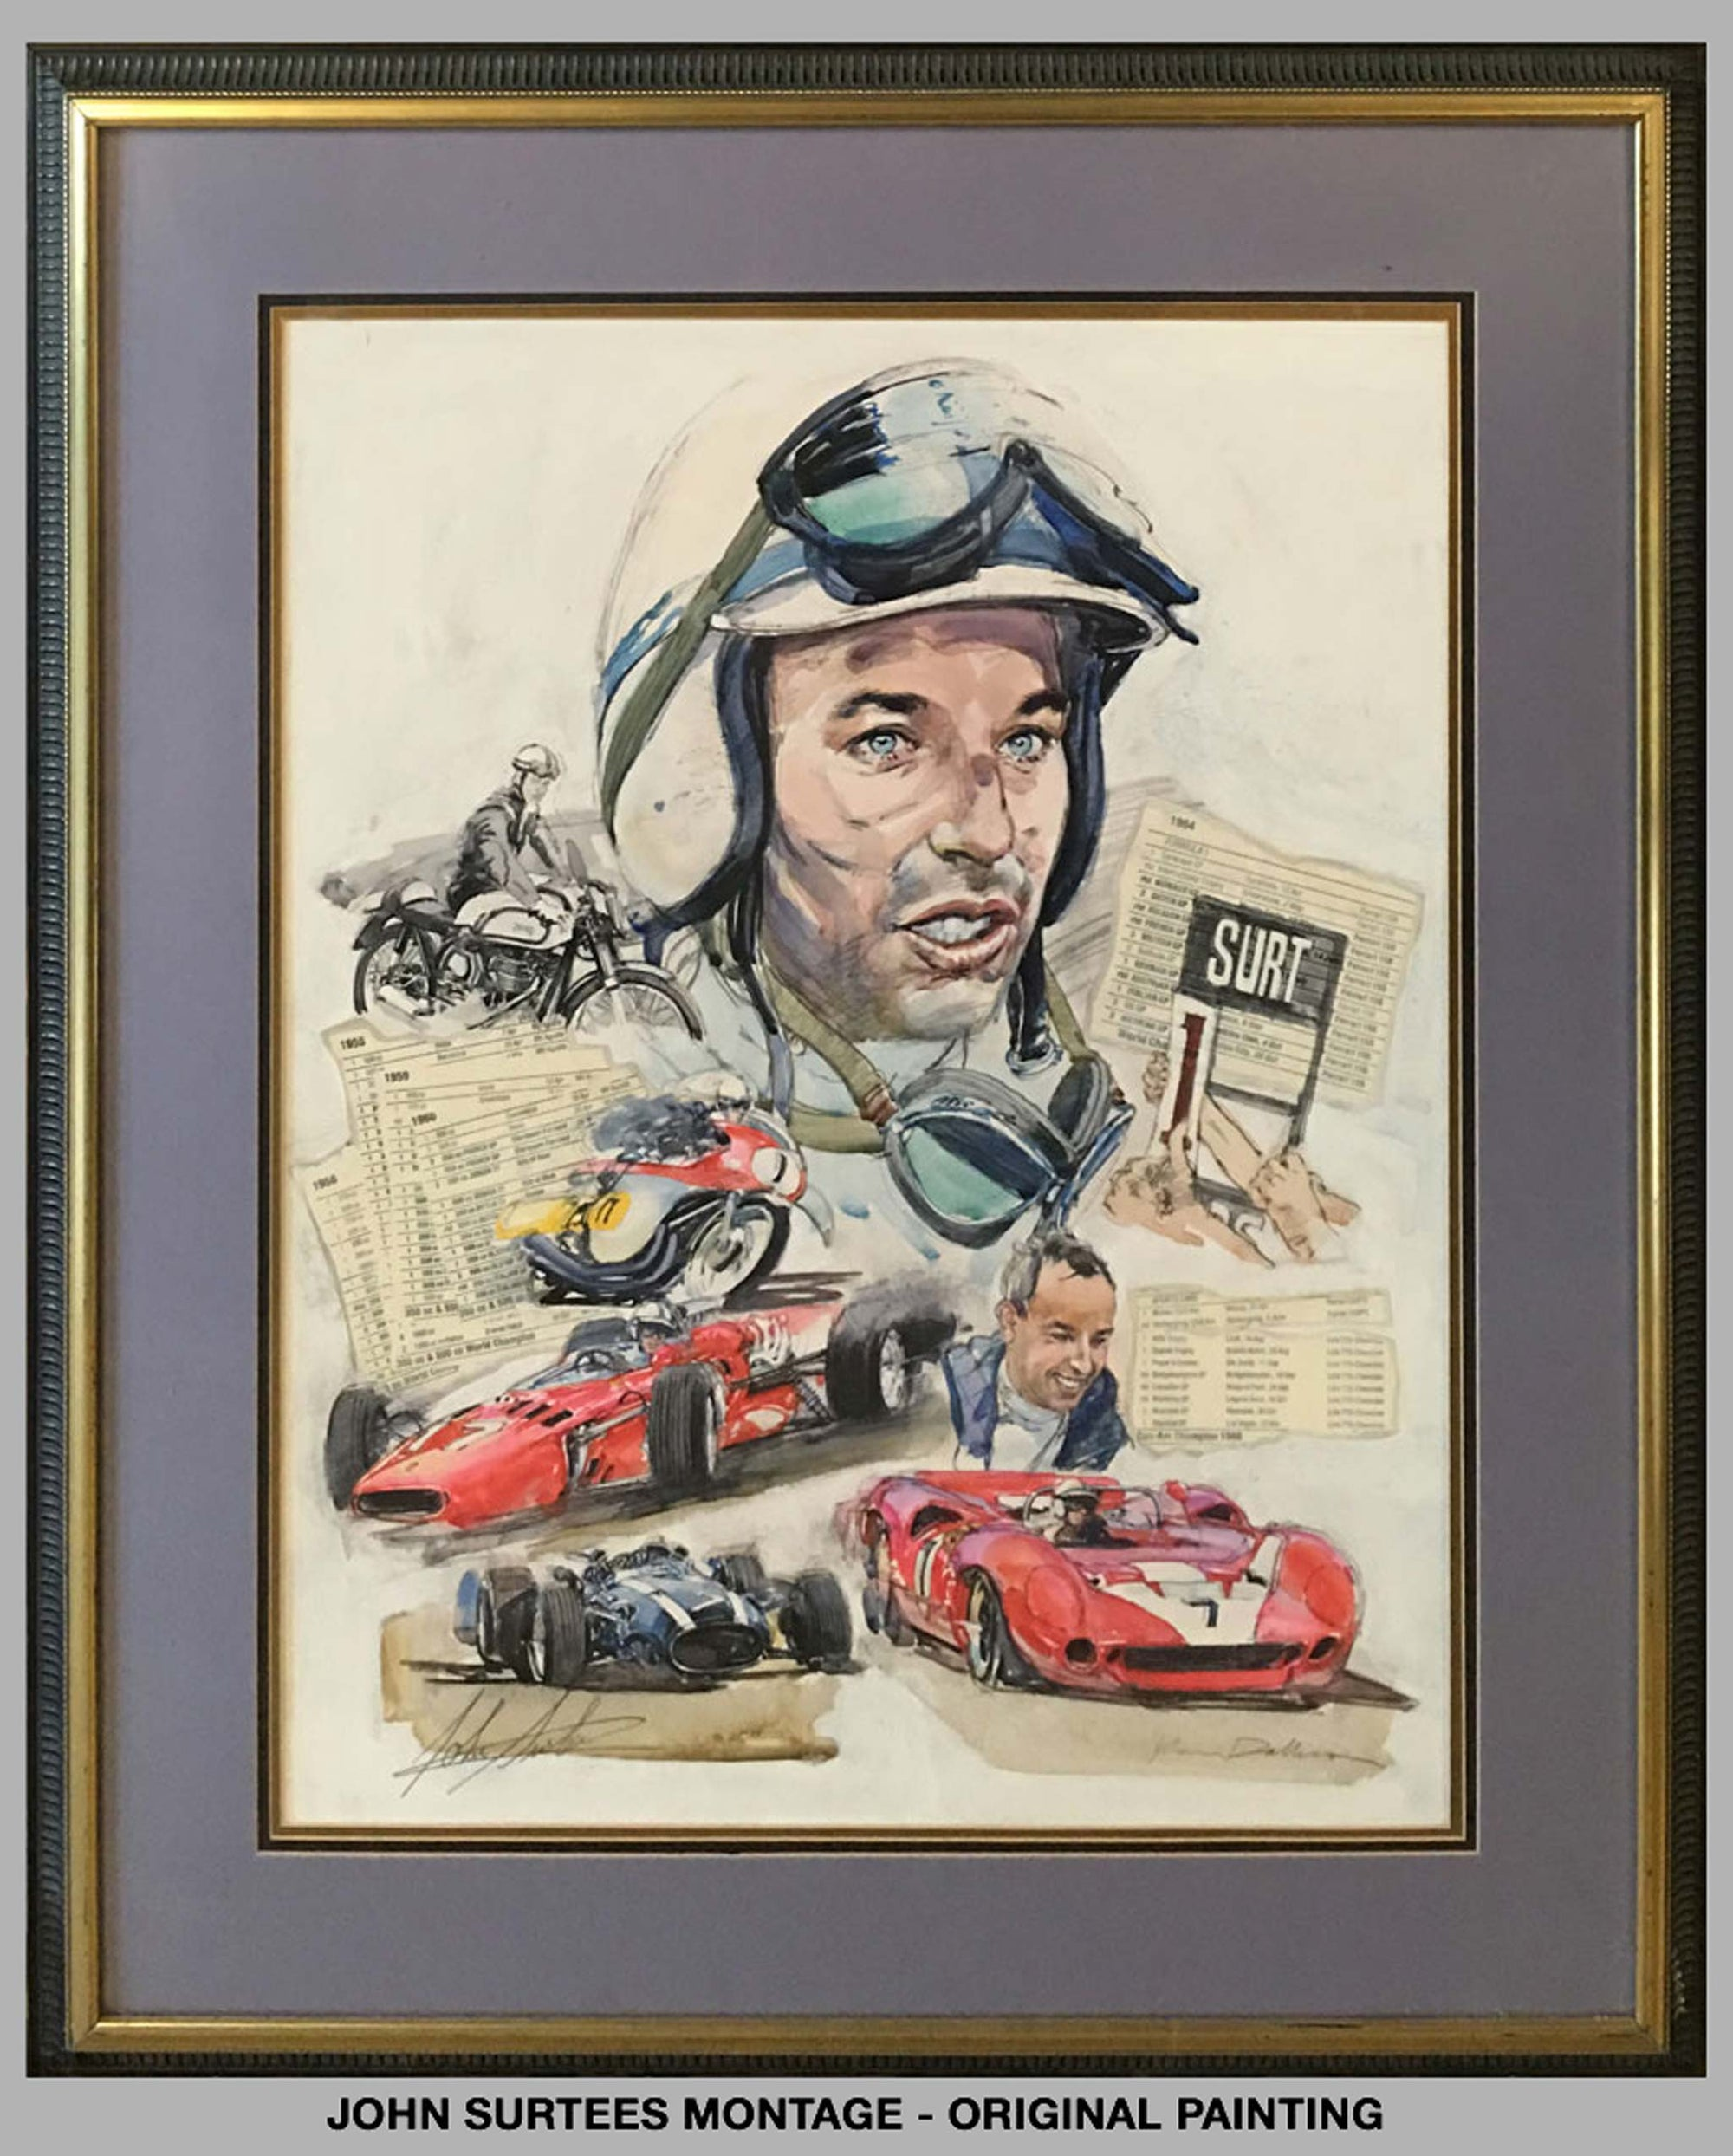 John Surtees Montage by Ken Dallison (2001) painting